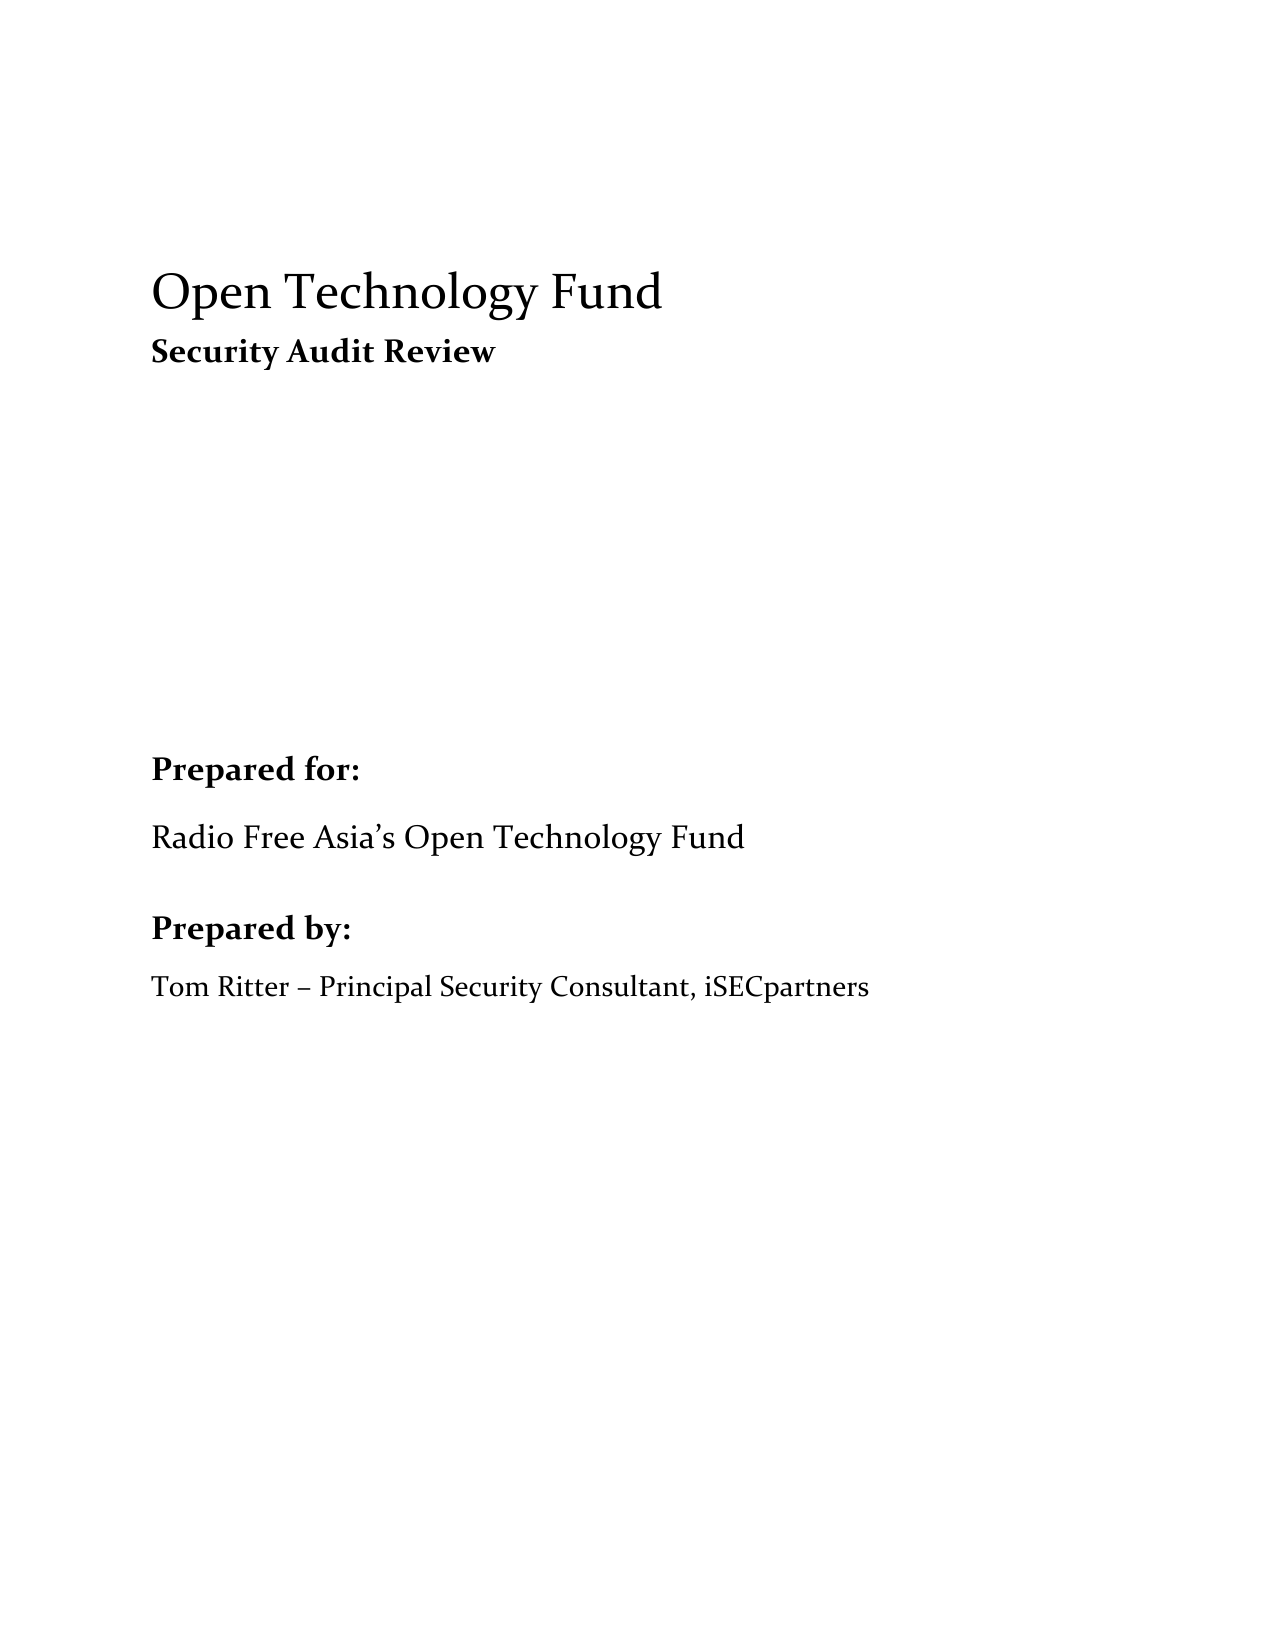 First page of the 'OTF Security Audit Review' PDF